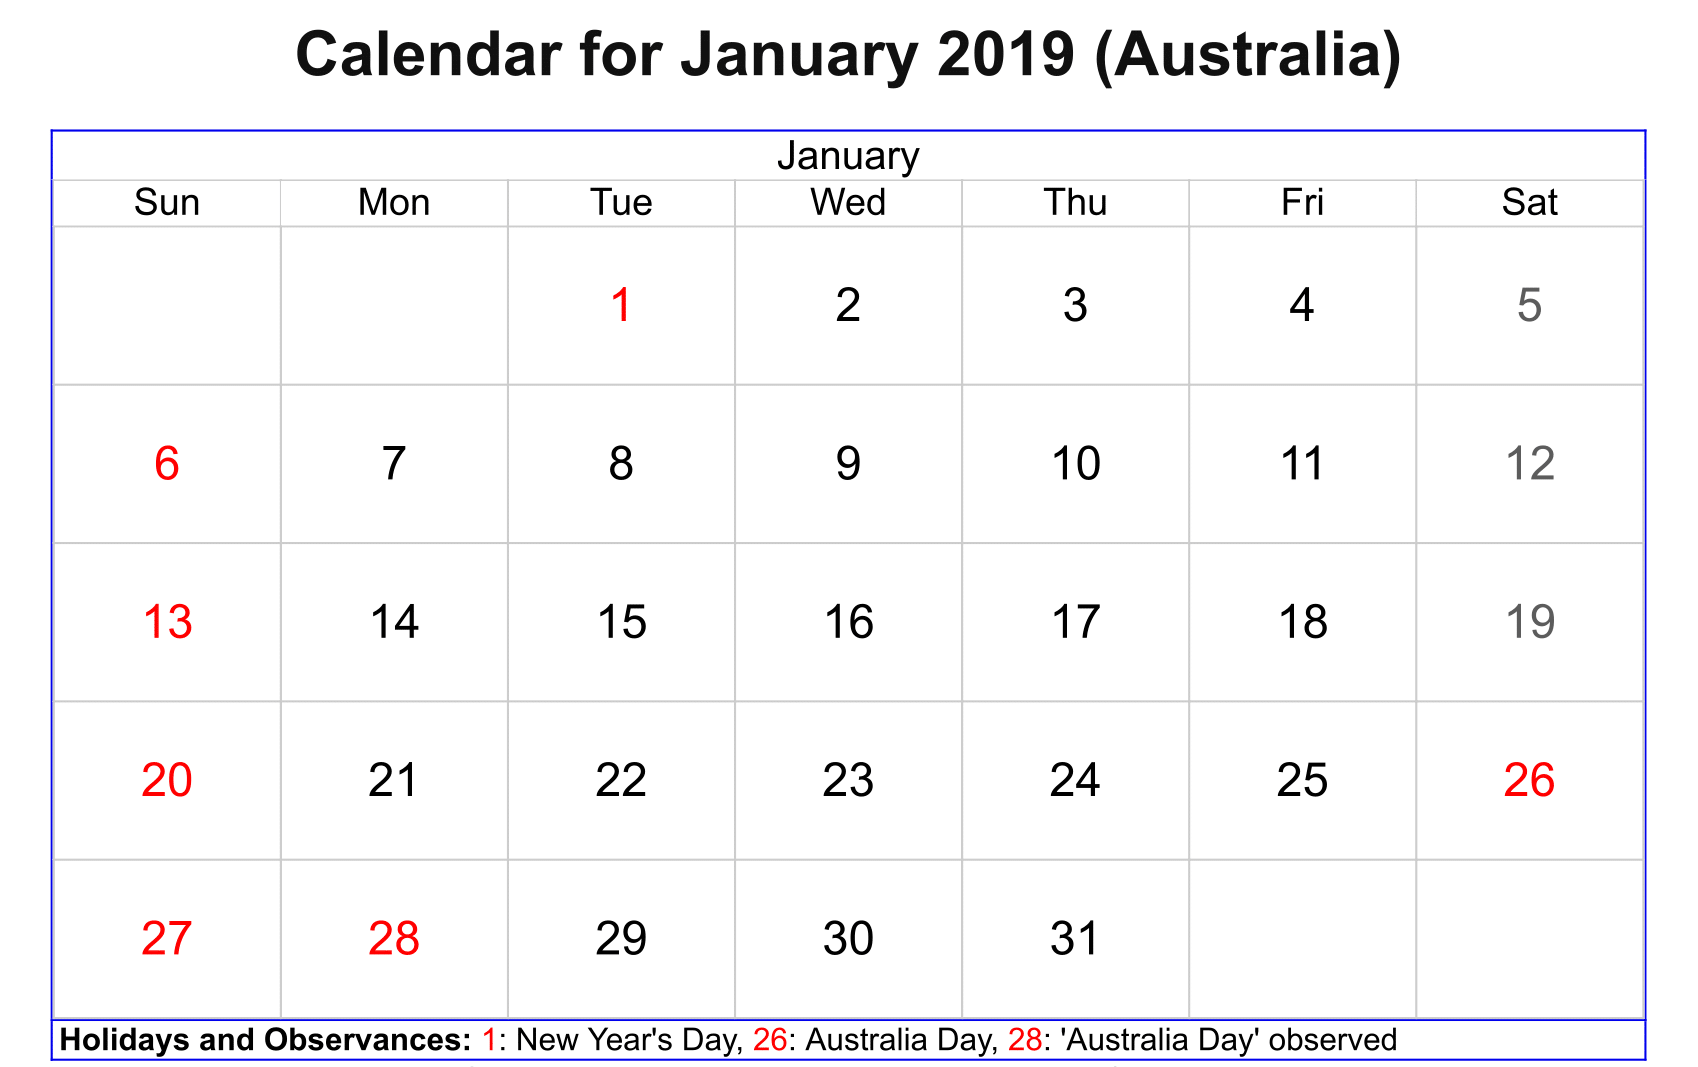 January 2019 Calendar With Holidays Australia